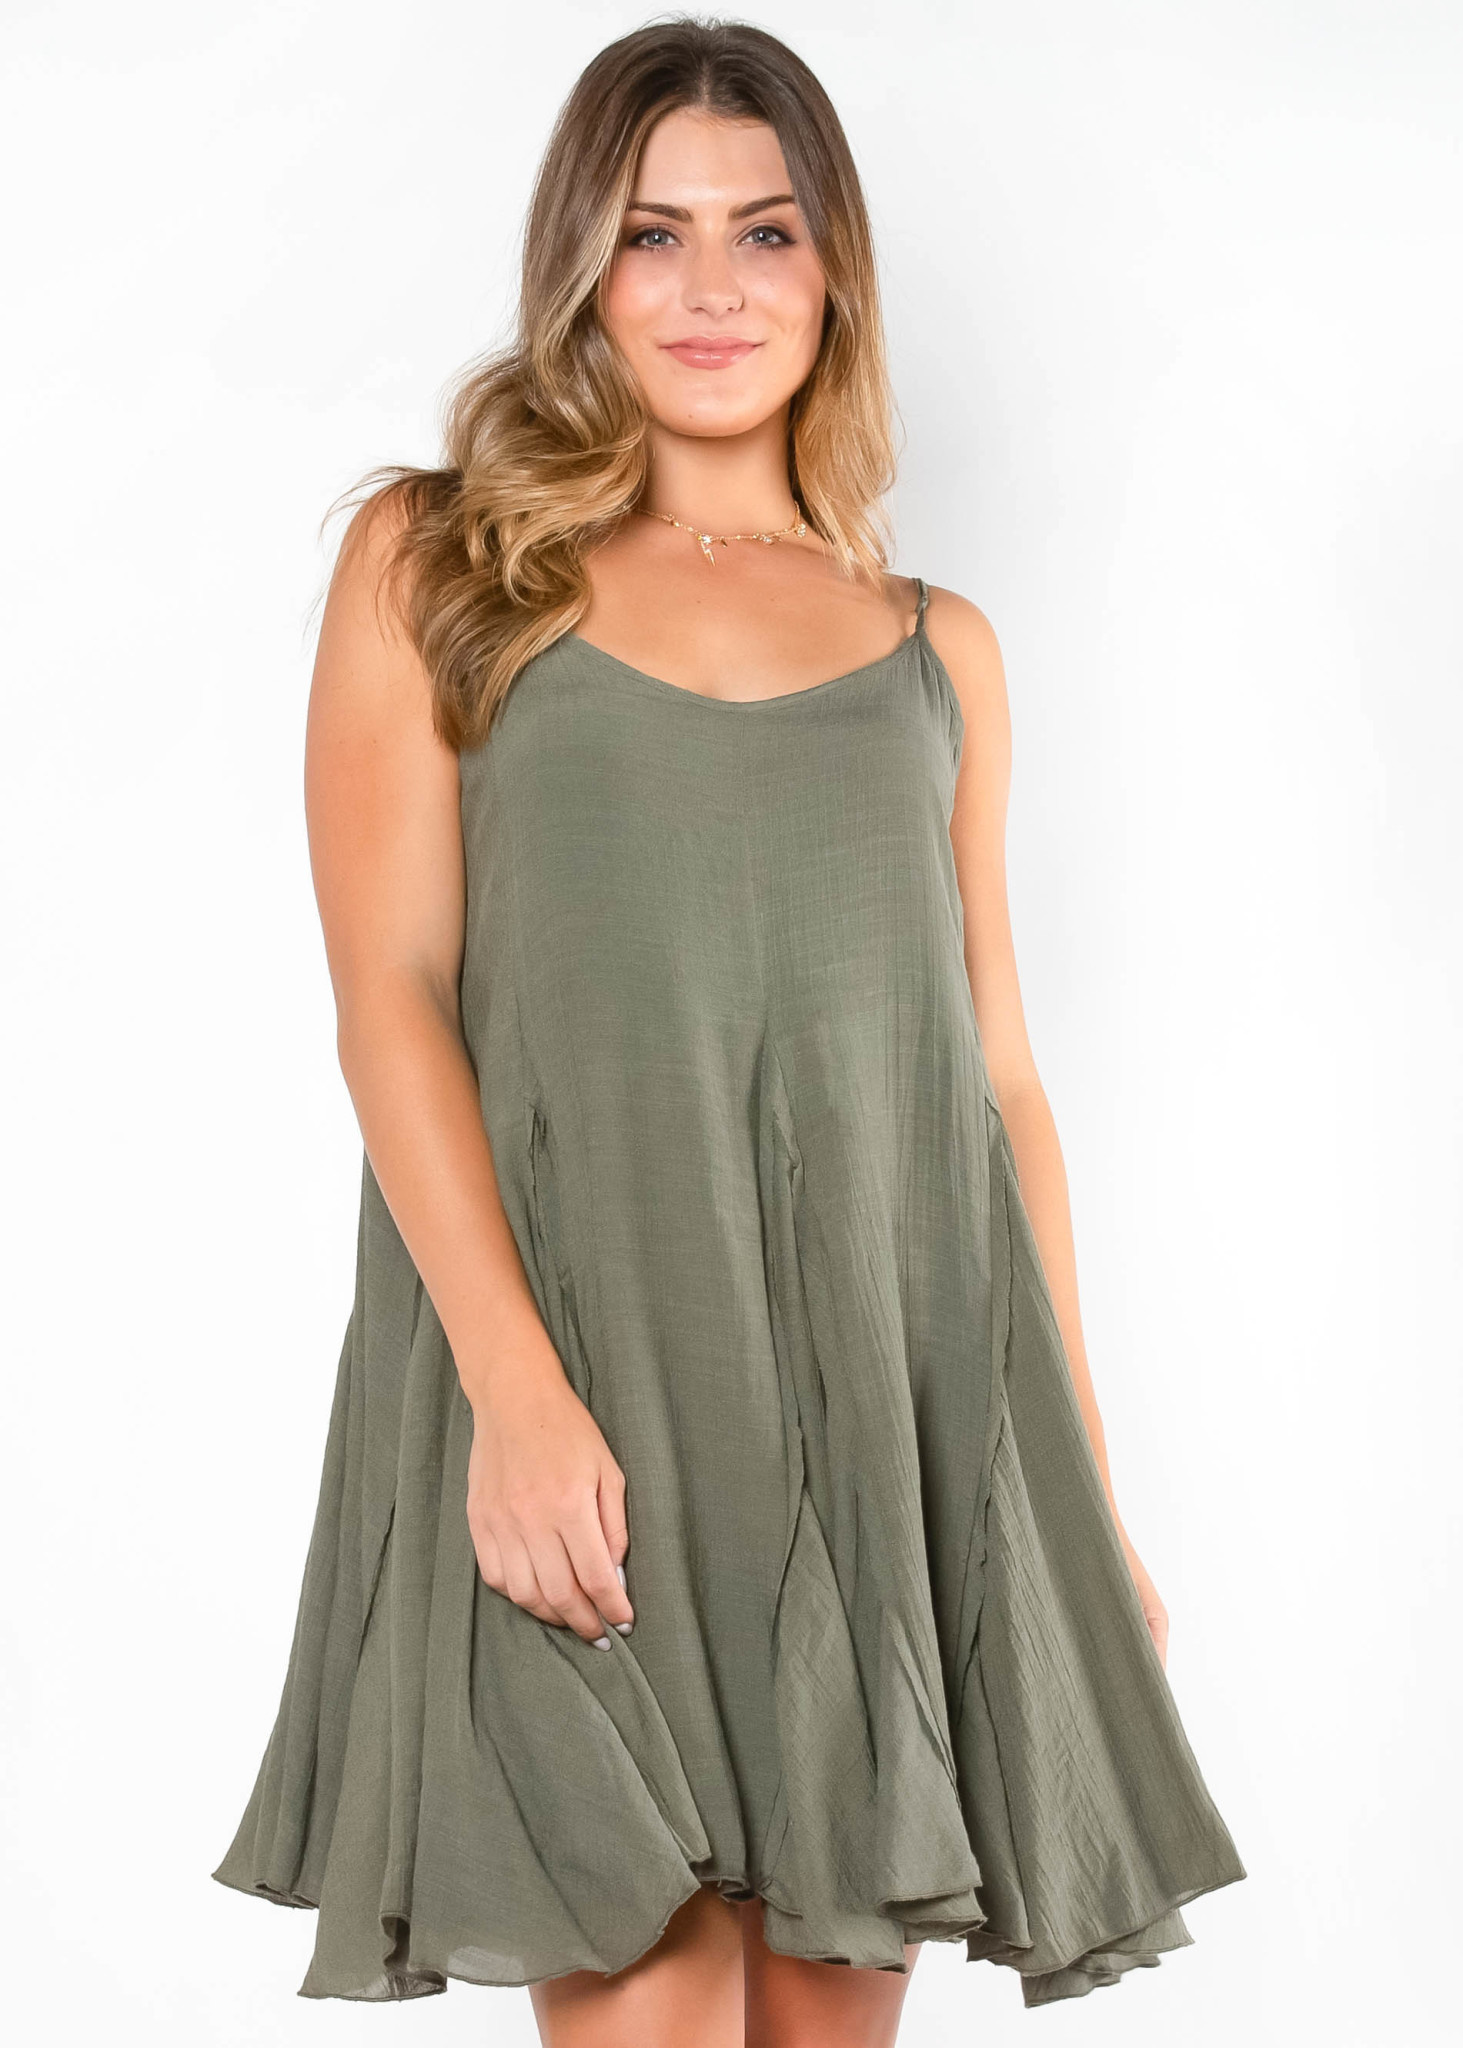 BACKYARD BLISS OLIVE DRESS